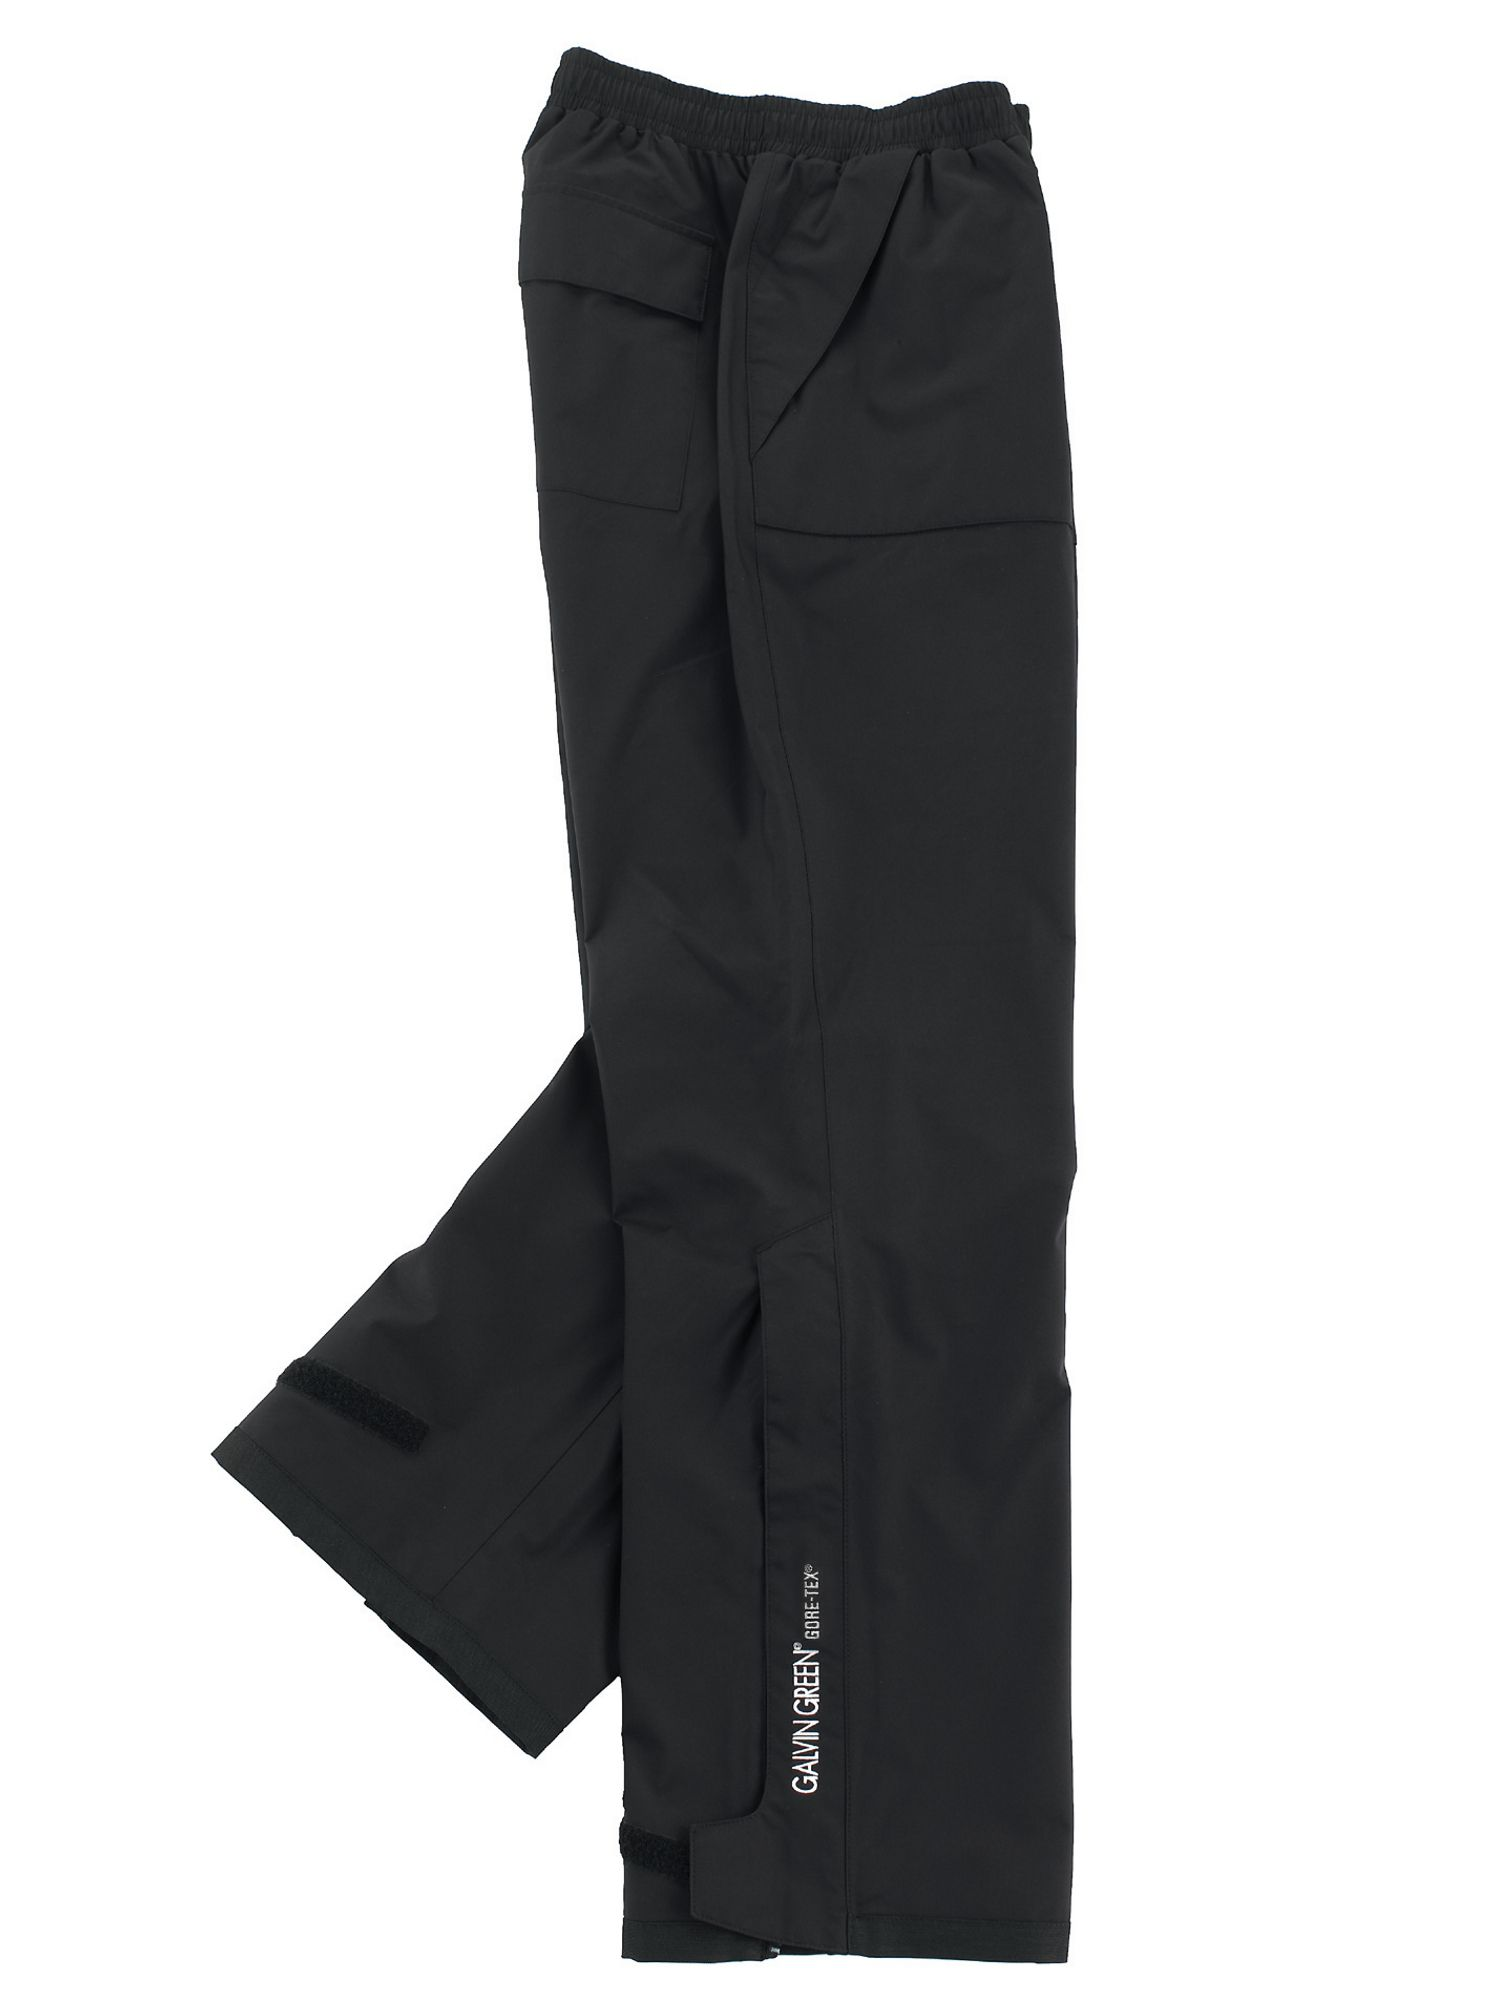 Men&39s Galvin Green Alf goretex trousers Black